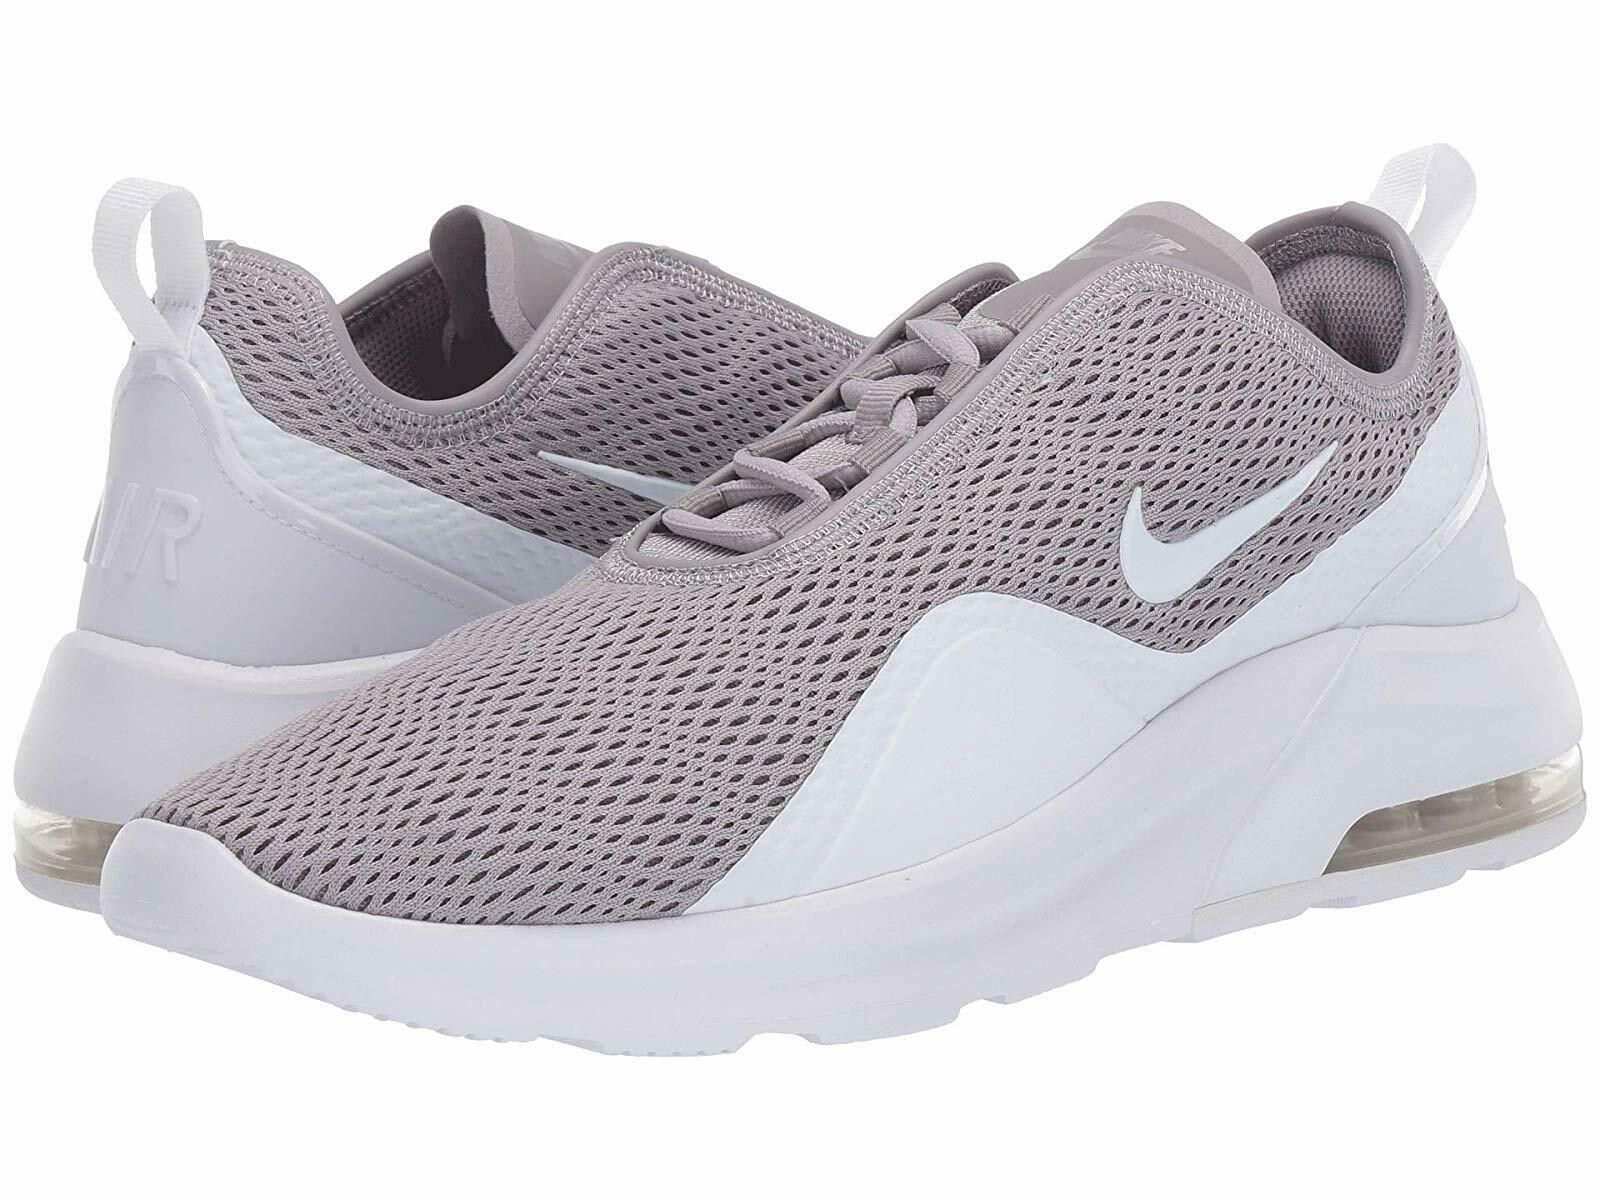 Homme Baskets & chaussures De Sport Nike Air Max Motion 2